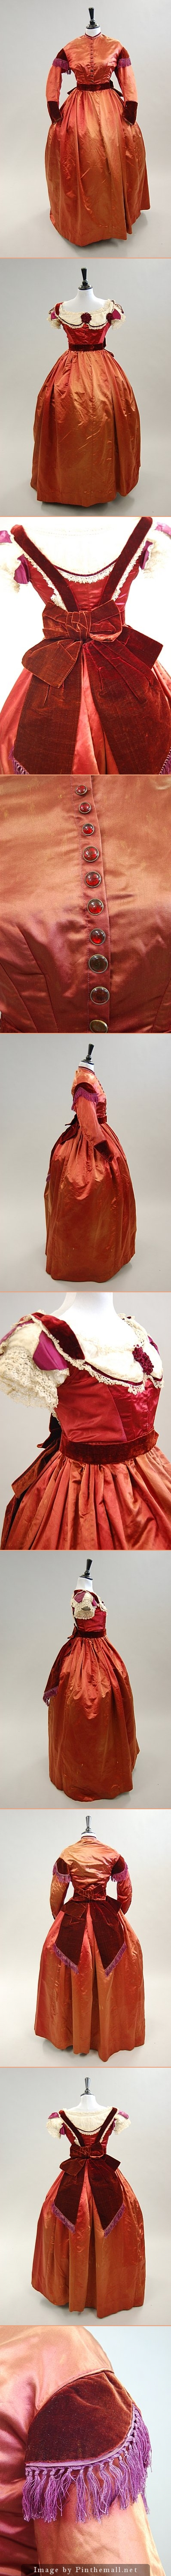 A copper-red satin gown with day and evening bodice.  1860s. - created via http://pinthemall.net